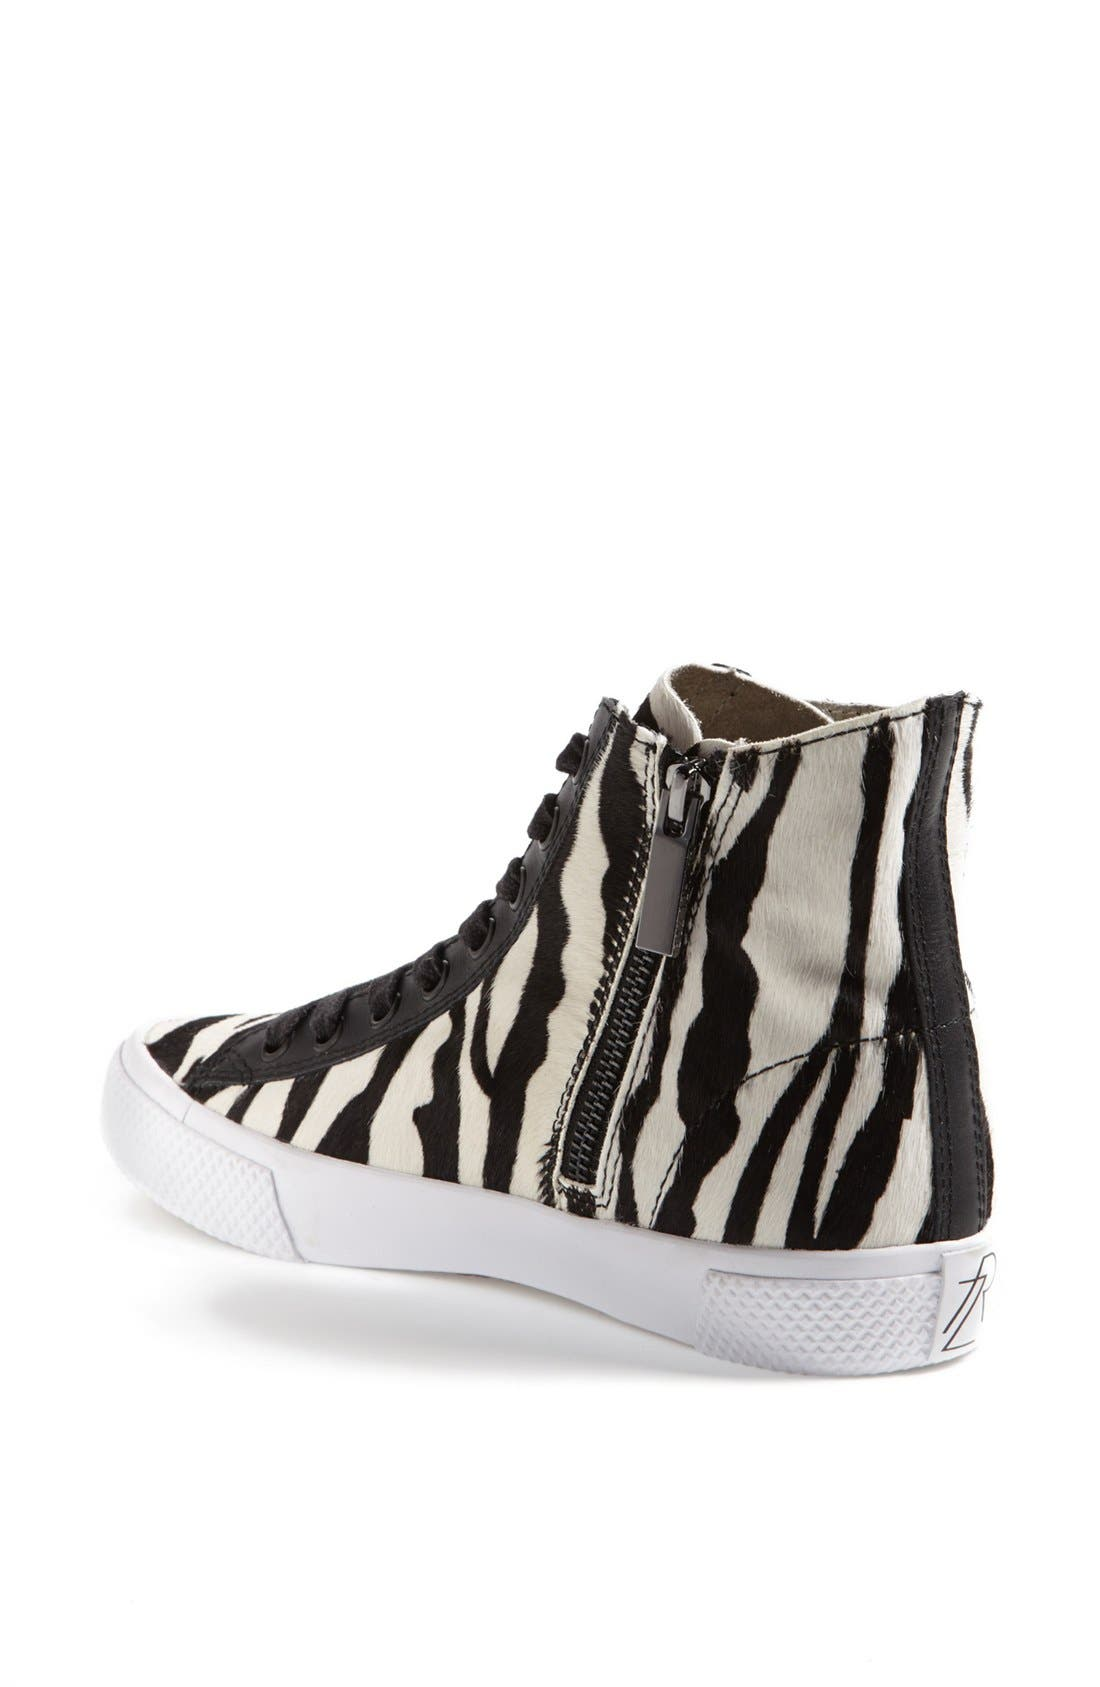 Alternate Image 2  - Rachel Zoe 'Barret' Zebra Print Calf Hair Sneaker (Online Only)